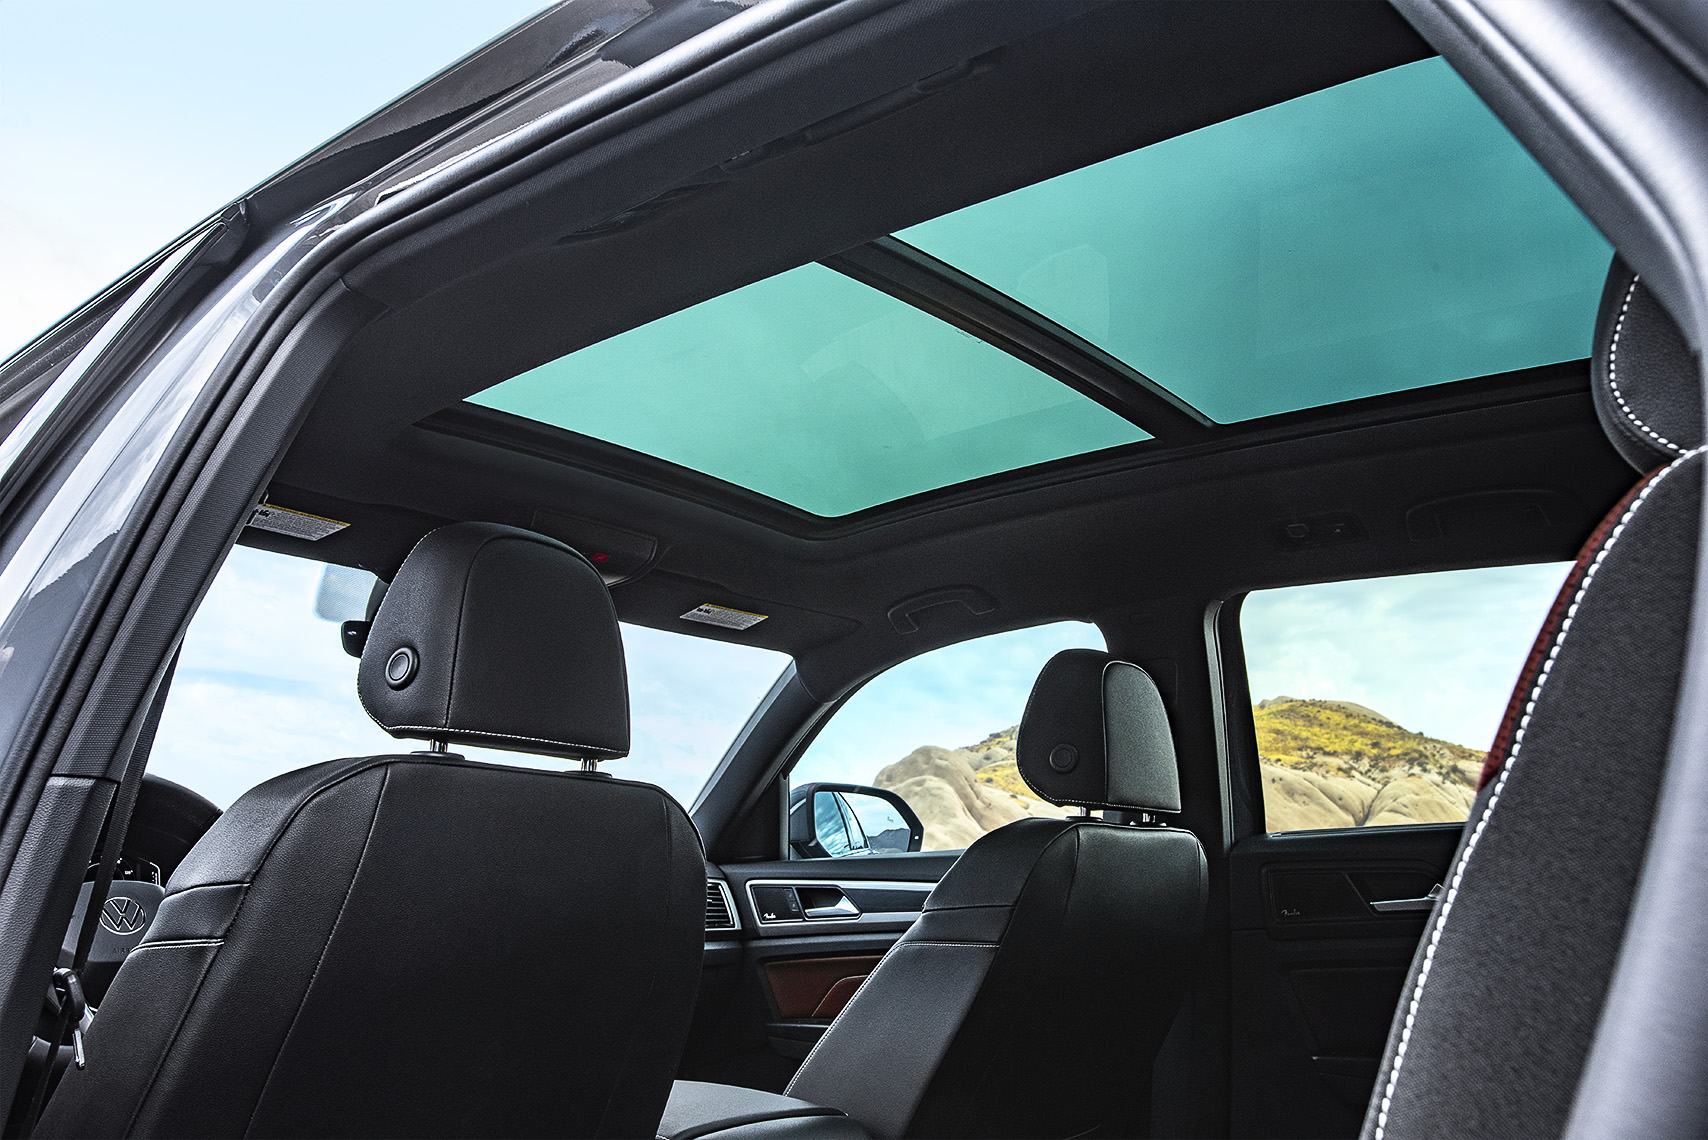 VW_AtlasCrossSport_sunroof